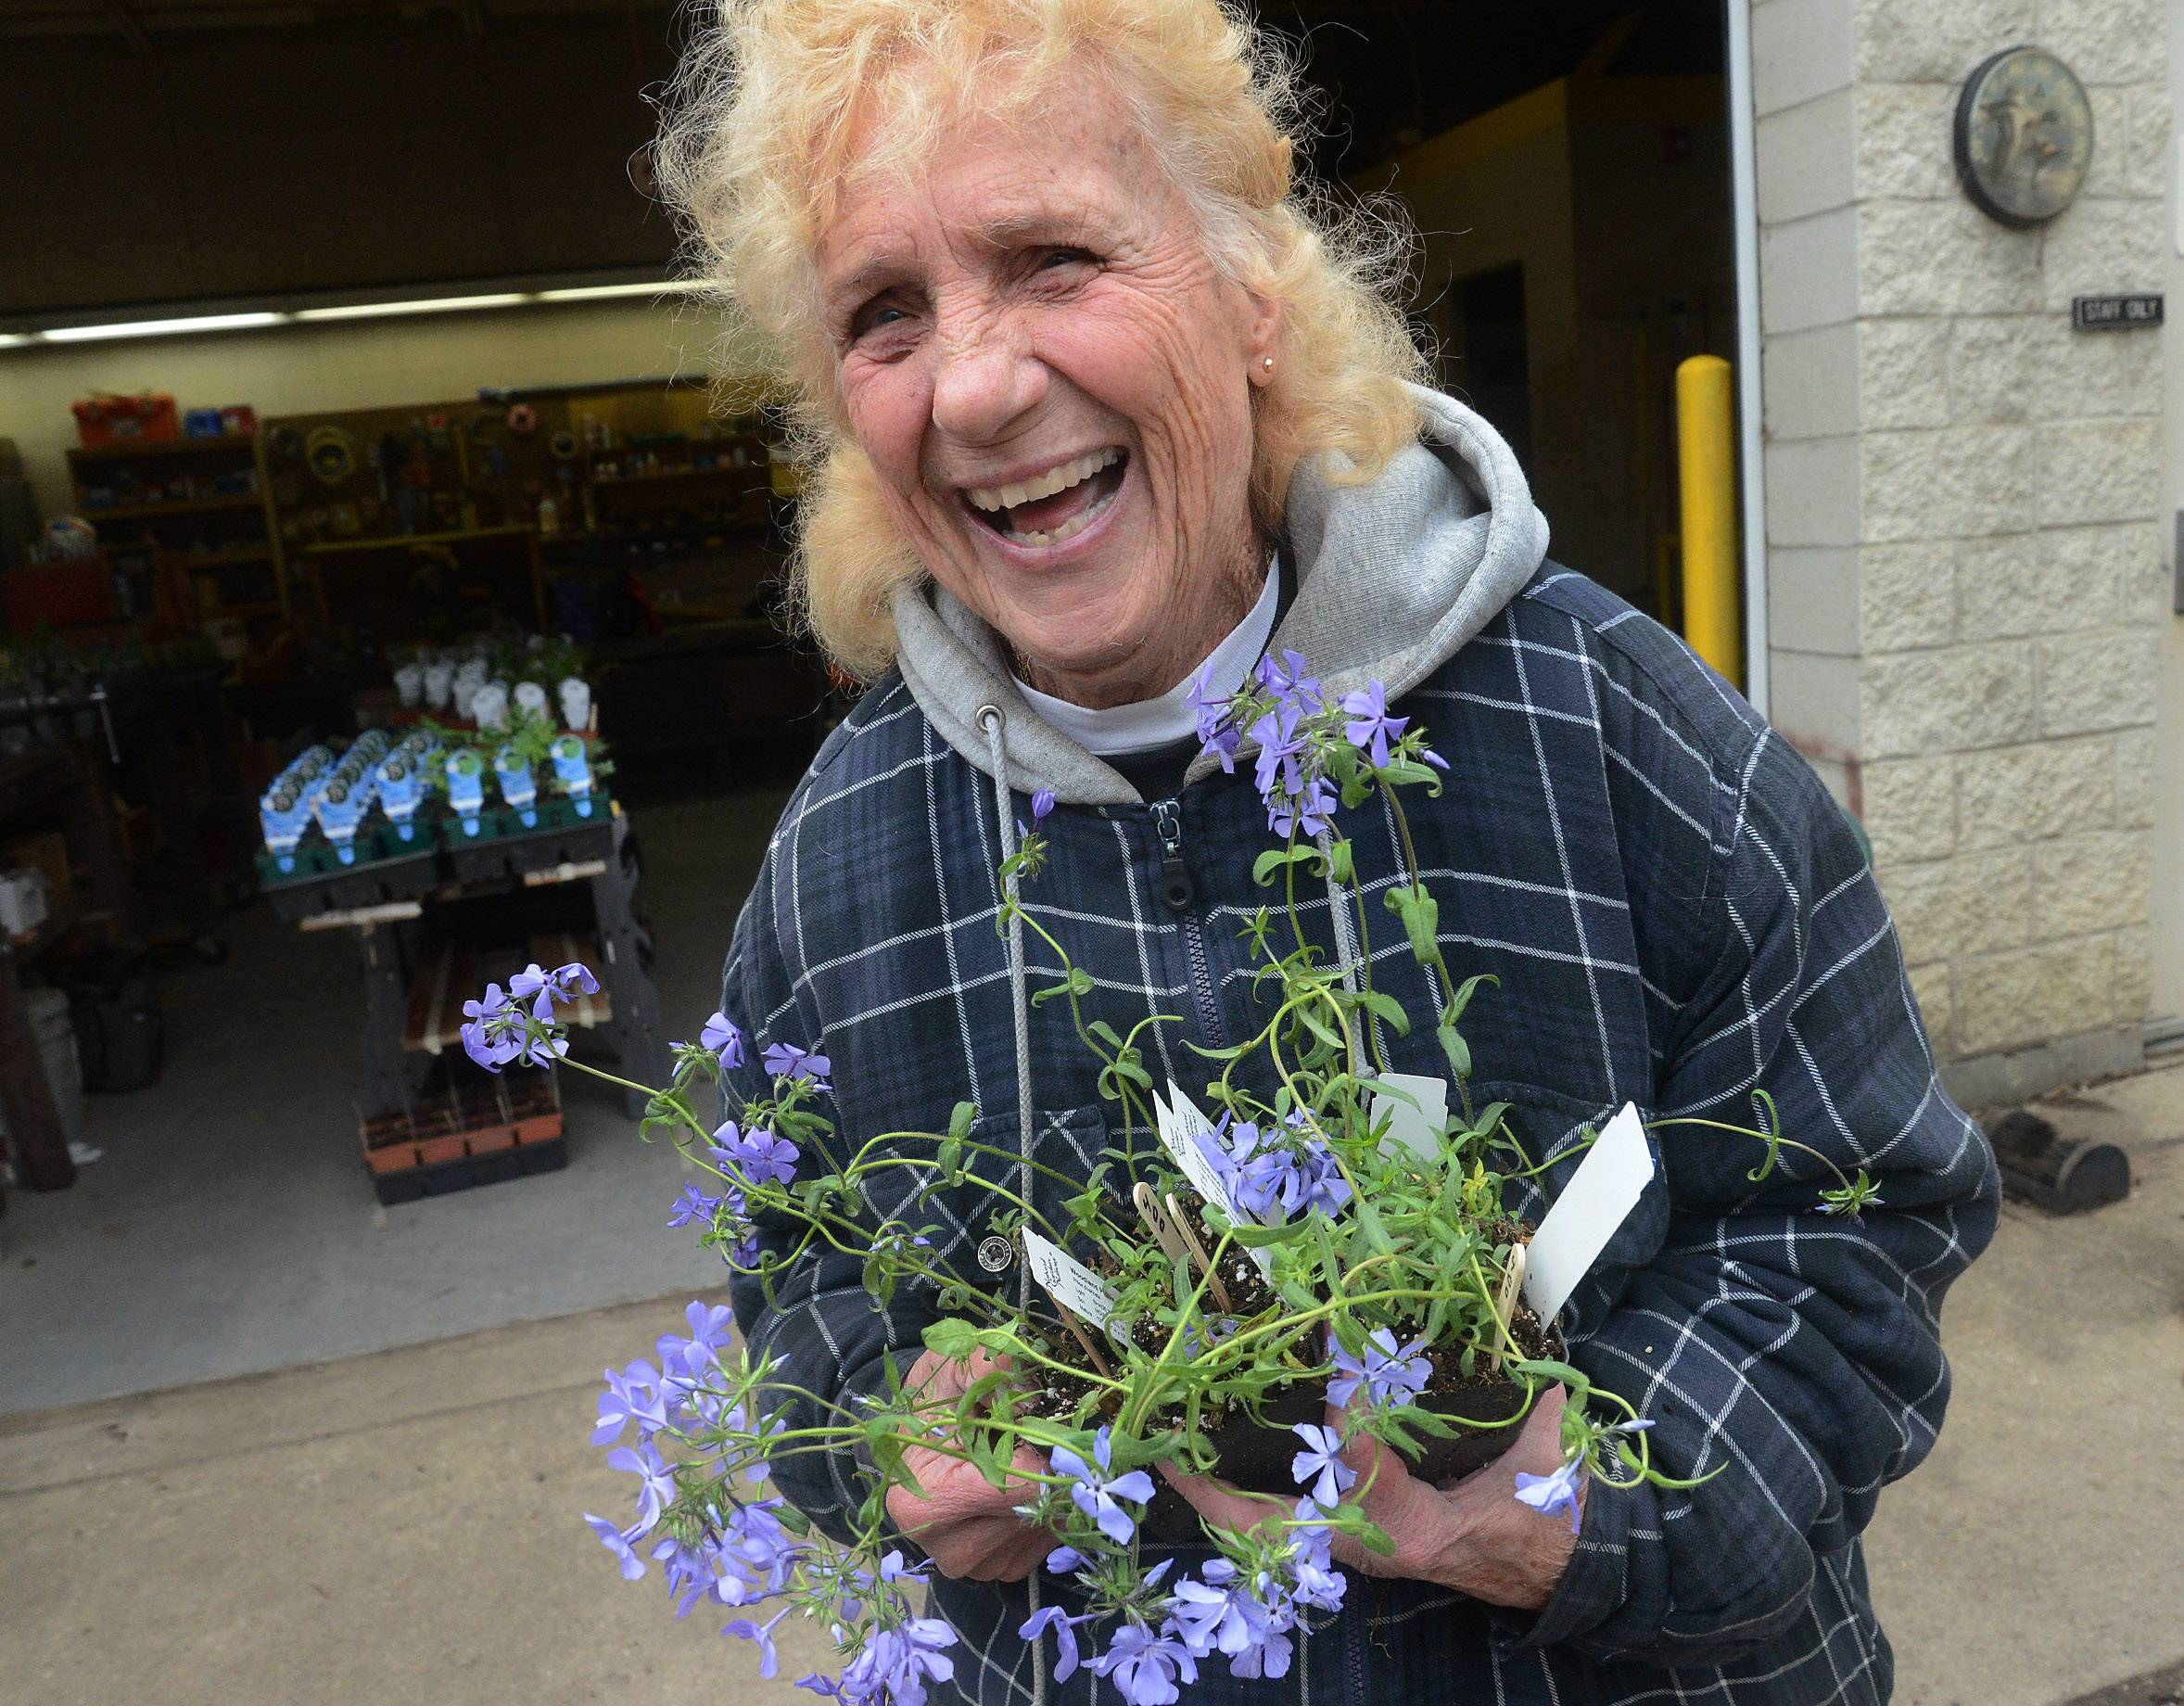 Longtime club member Delores Potter grabs a handful of plants as the Schaumburg Community Garden Club sets up for its big native plant sale this weekend.